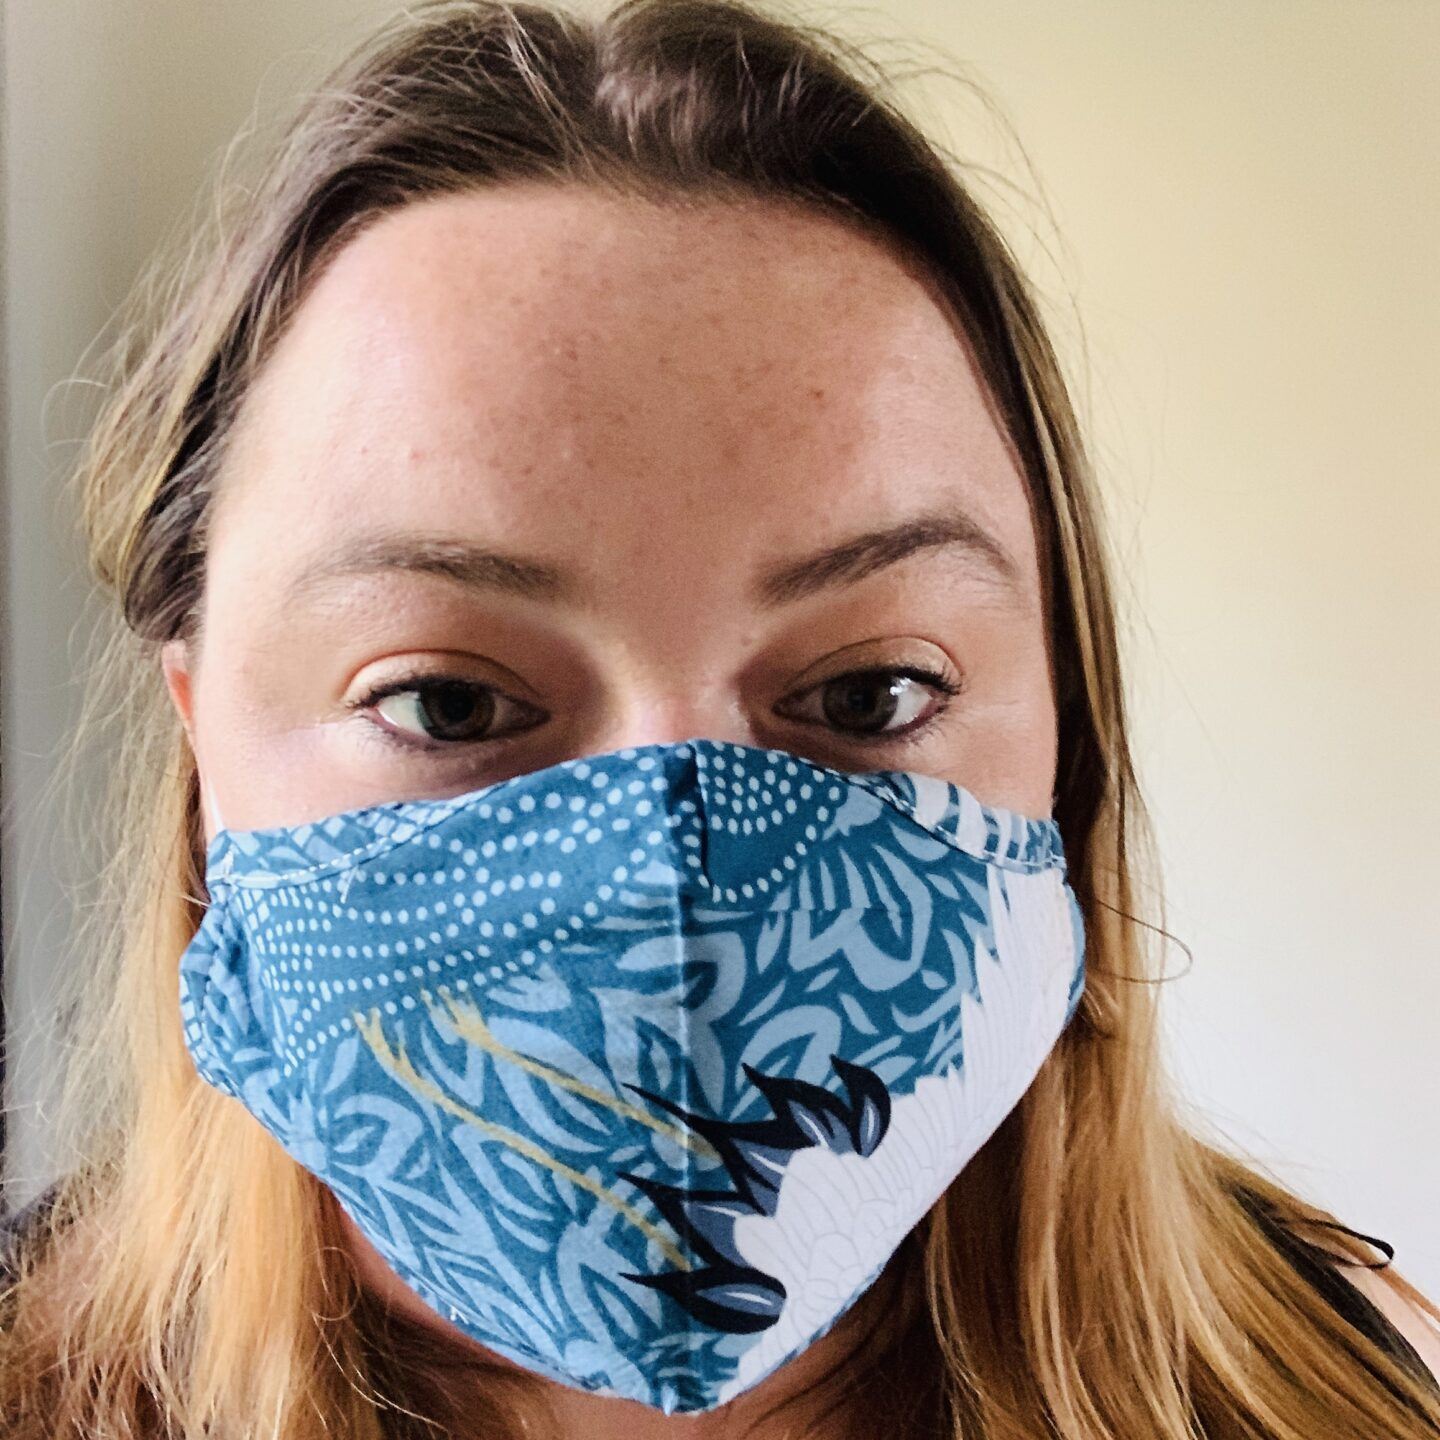 wear a mask during quarantine